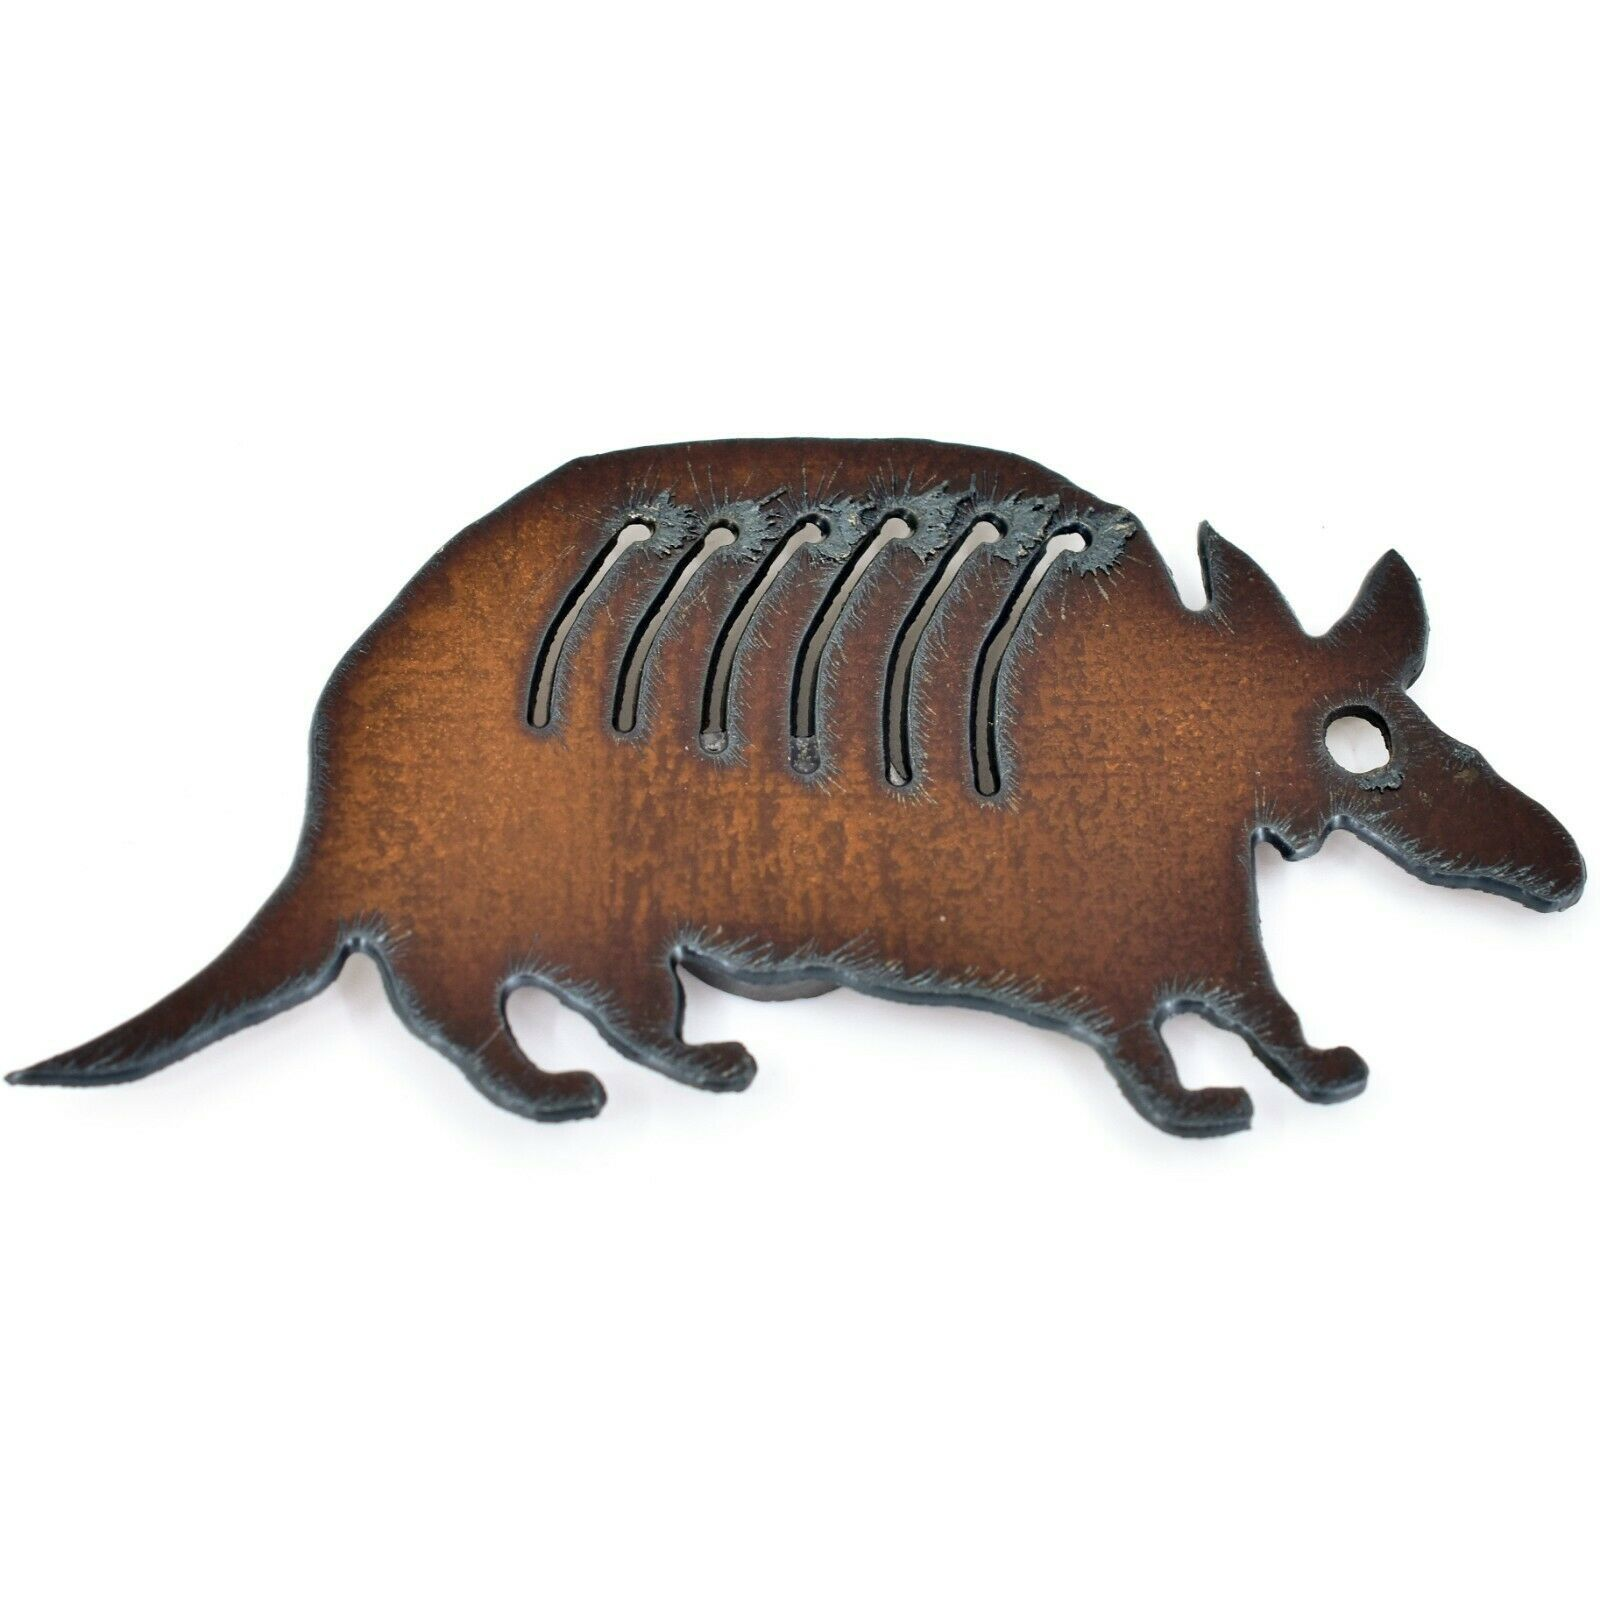 Country Western Rusted Patina Iron Metal Cutout Armadillo Refrigerator Magnet